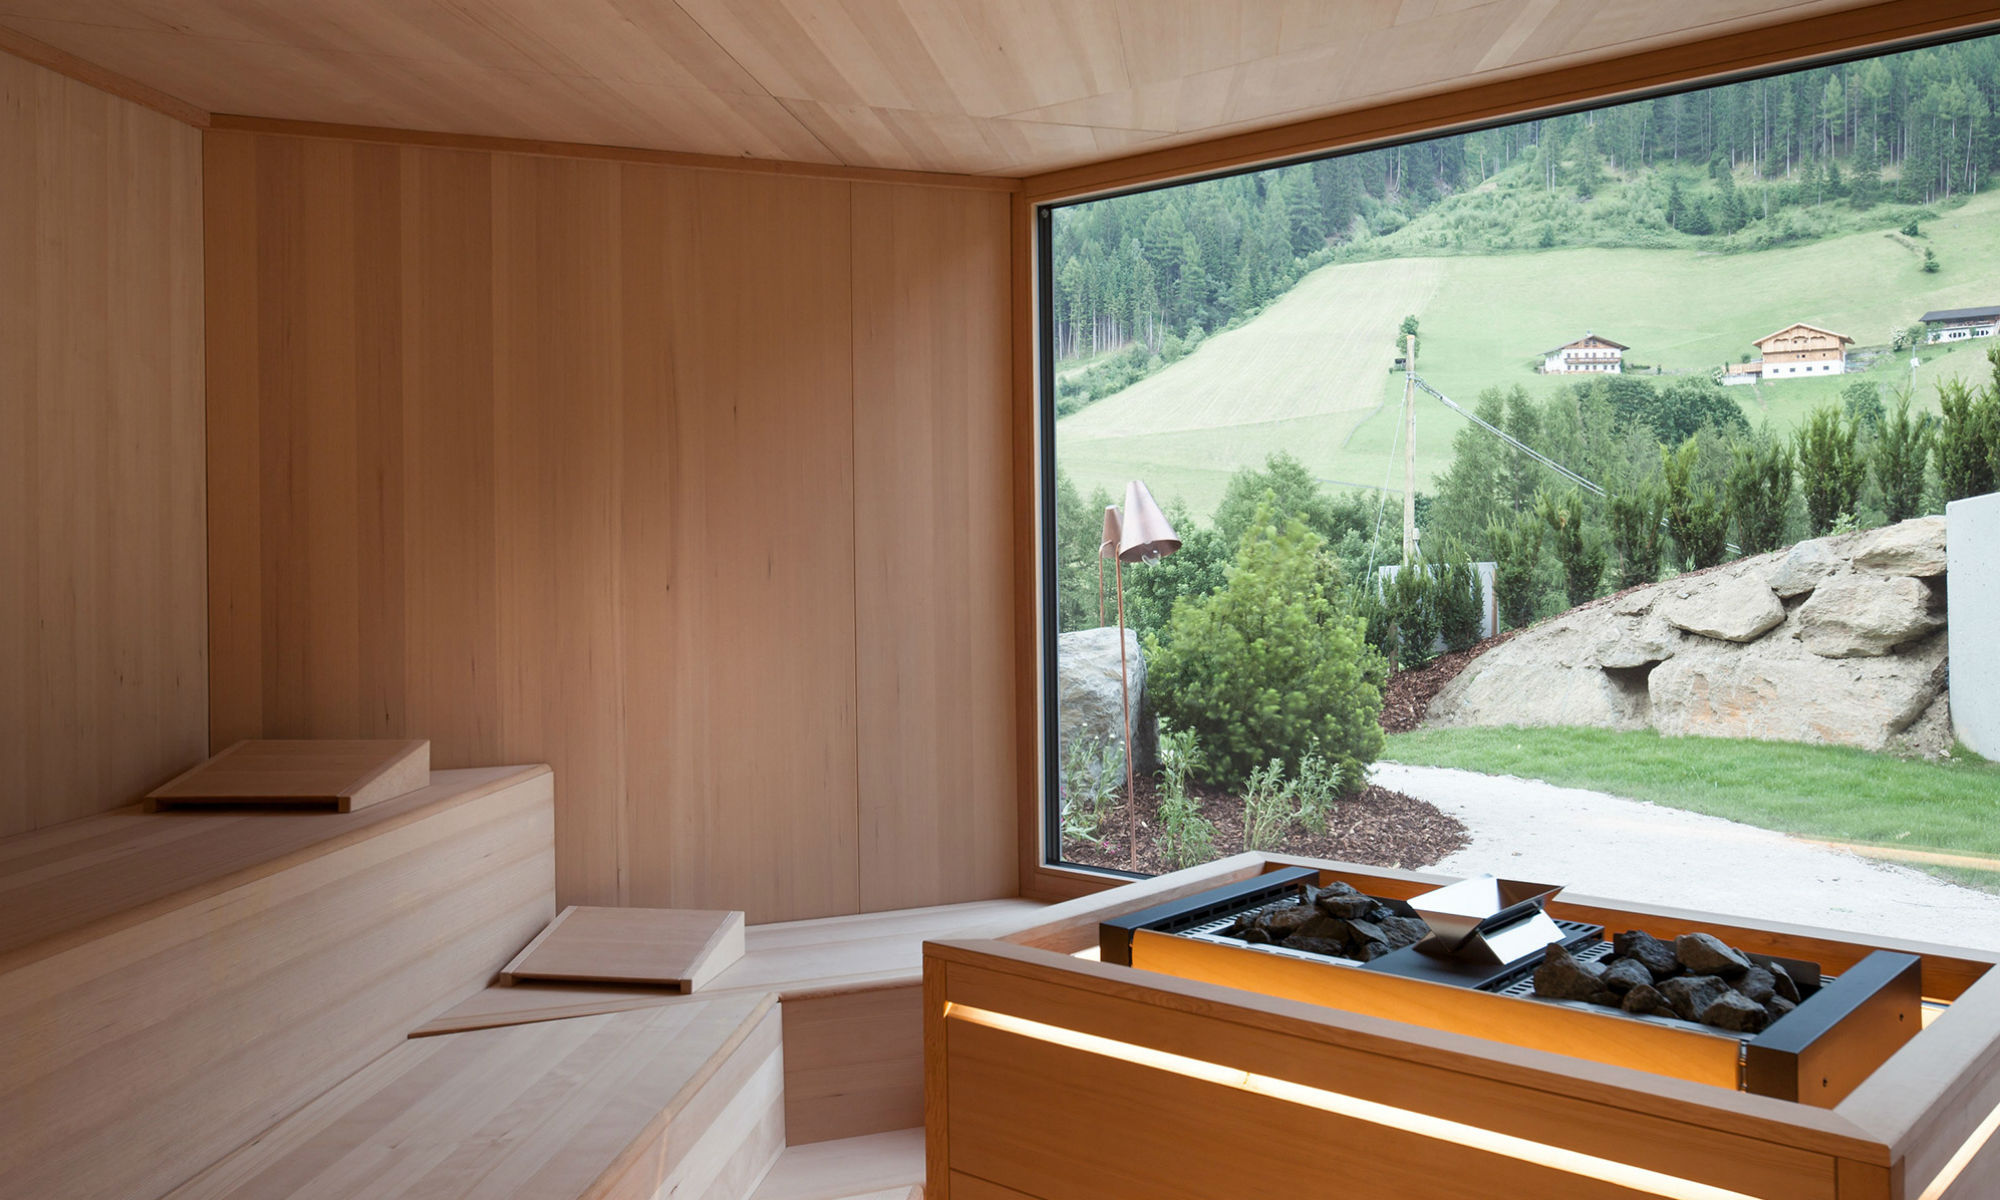 Sauna fans will be happy at the Bühelwirt